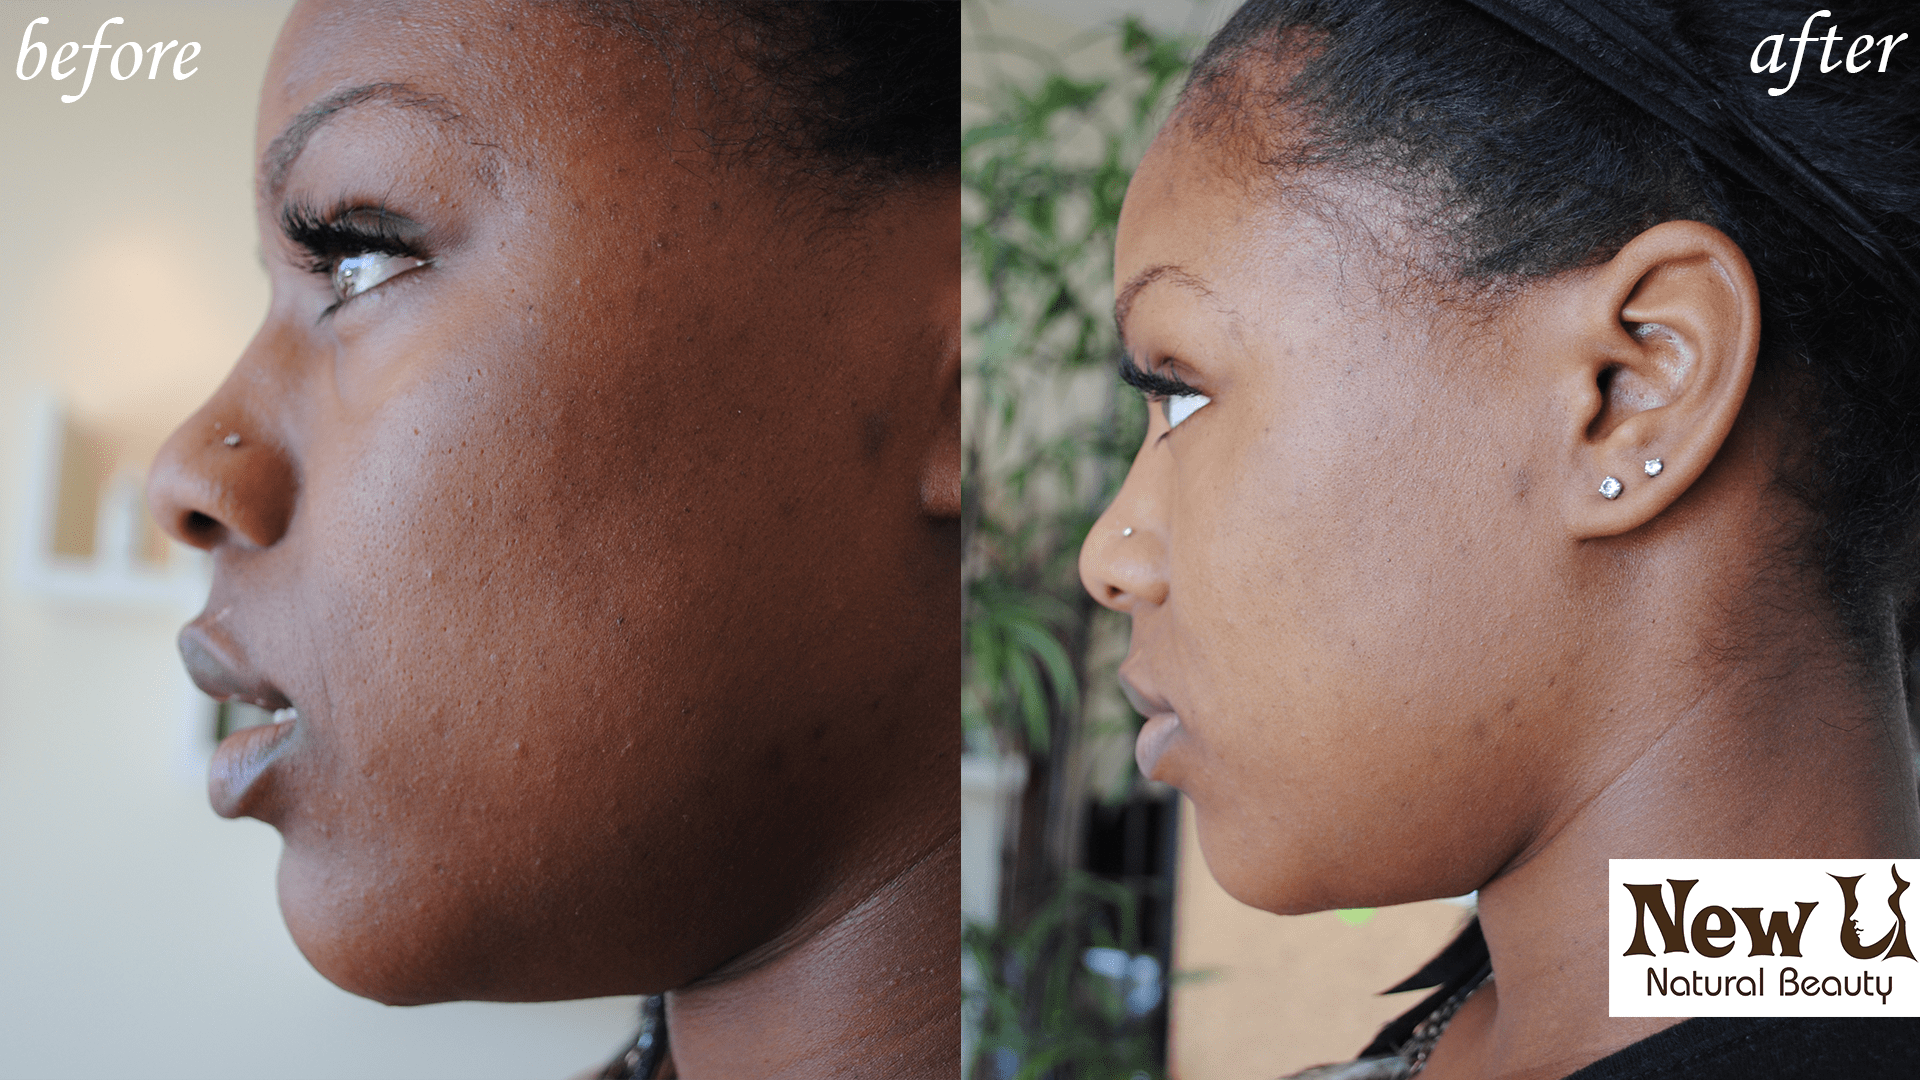 Acne Treatment 2 Las Vegas Before and After